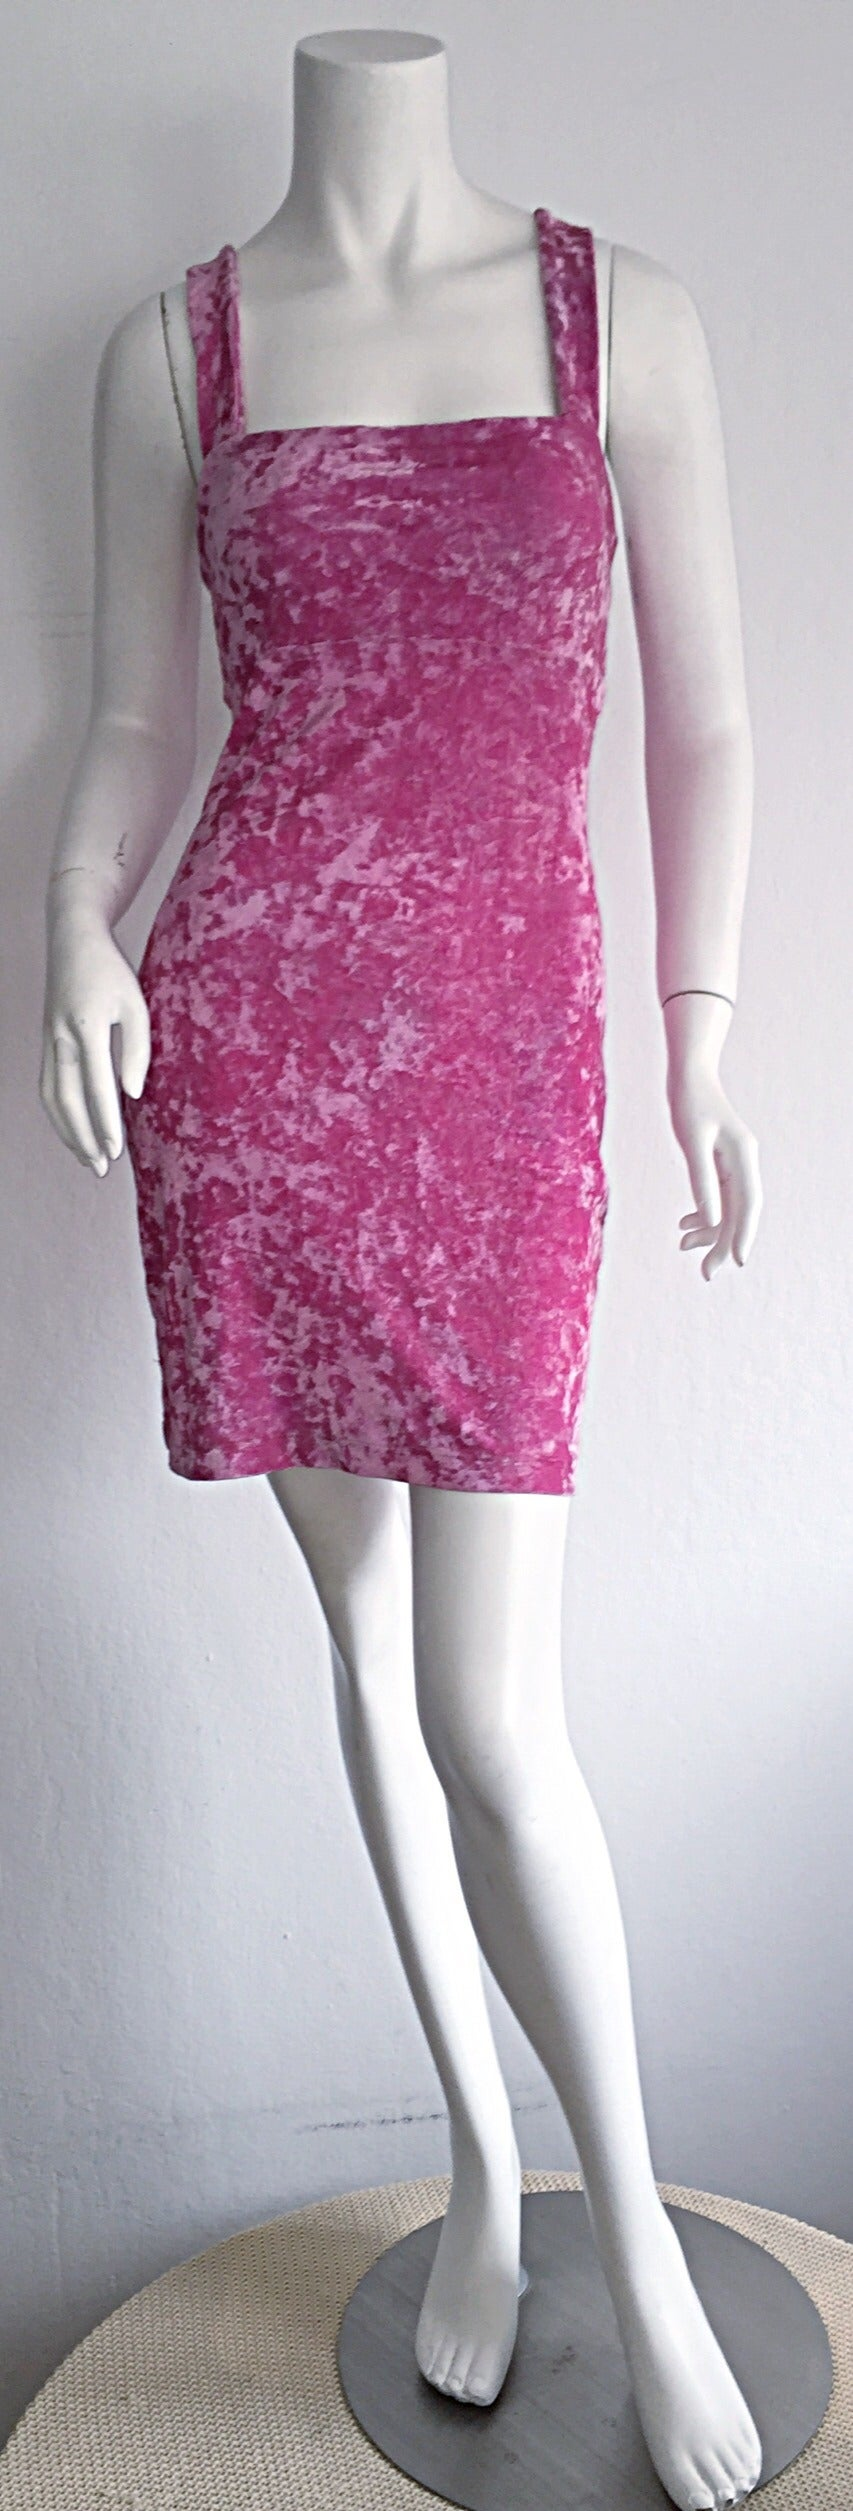 Iconic 1990s Vintage Betsey Johnson ' Barbie ' Crushed Velveteen Bodycon Dress 5